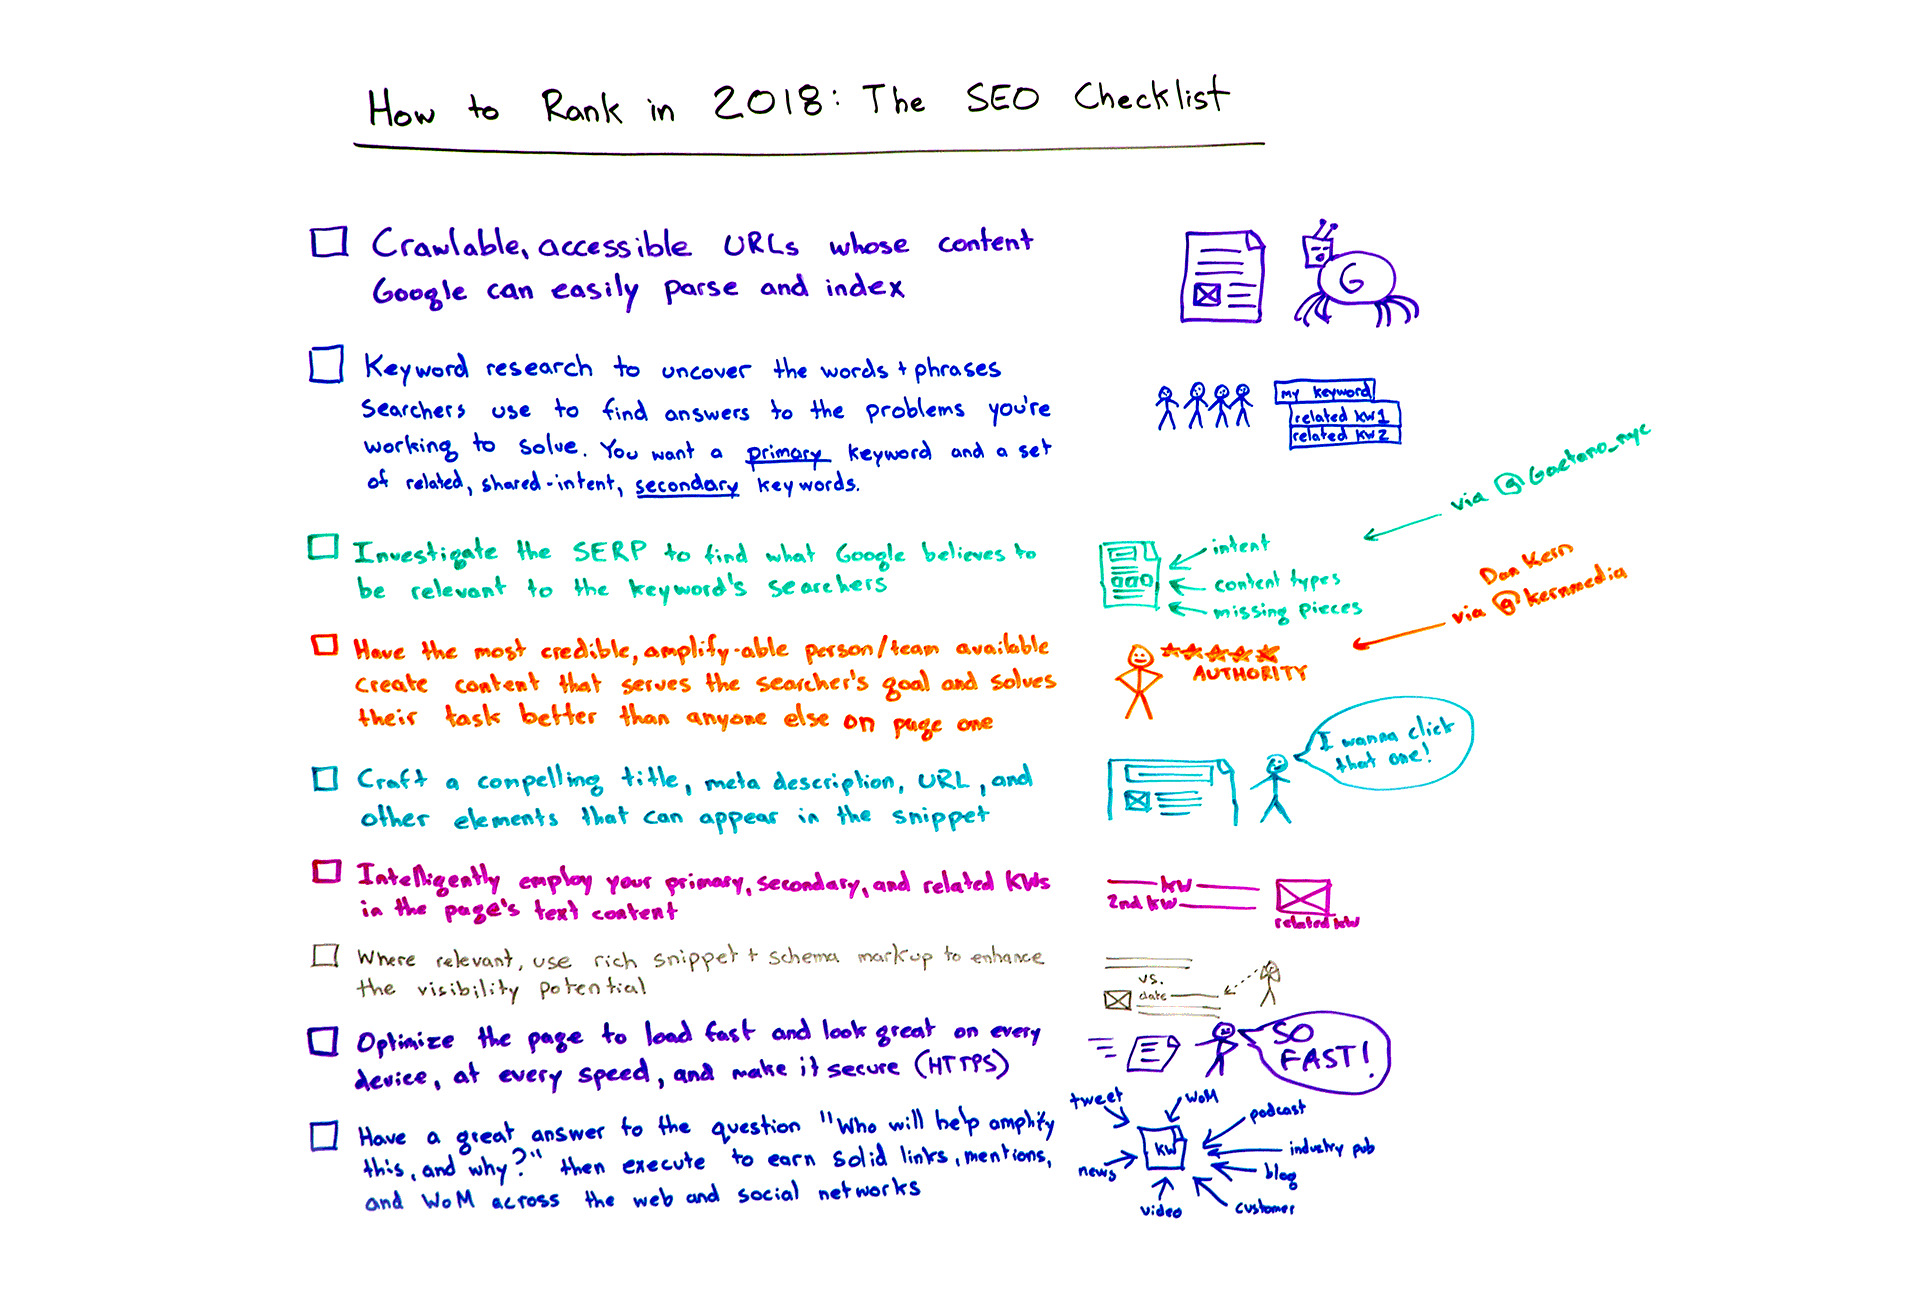 How to Rank: The SEO Checklist - Moz